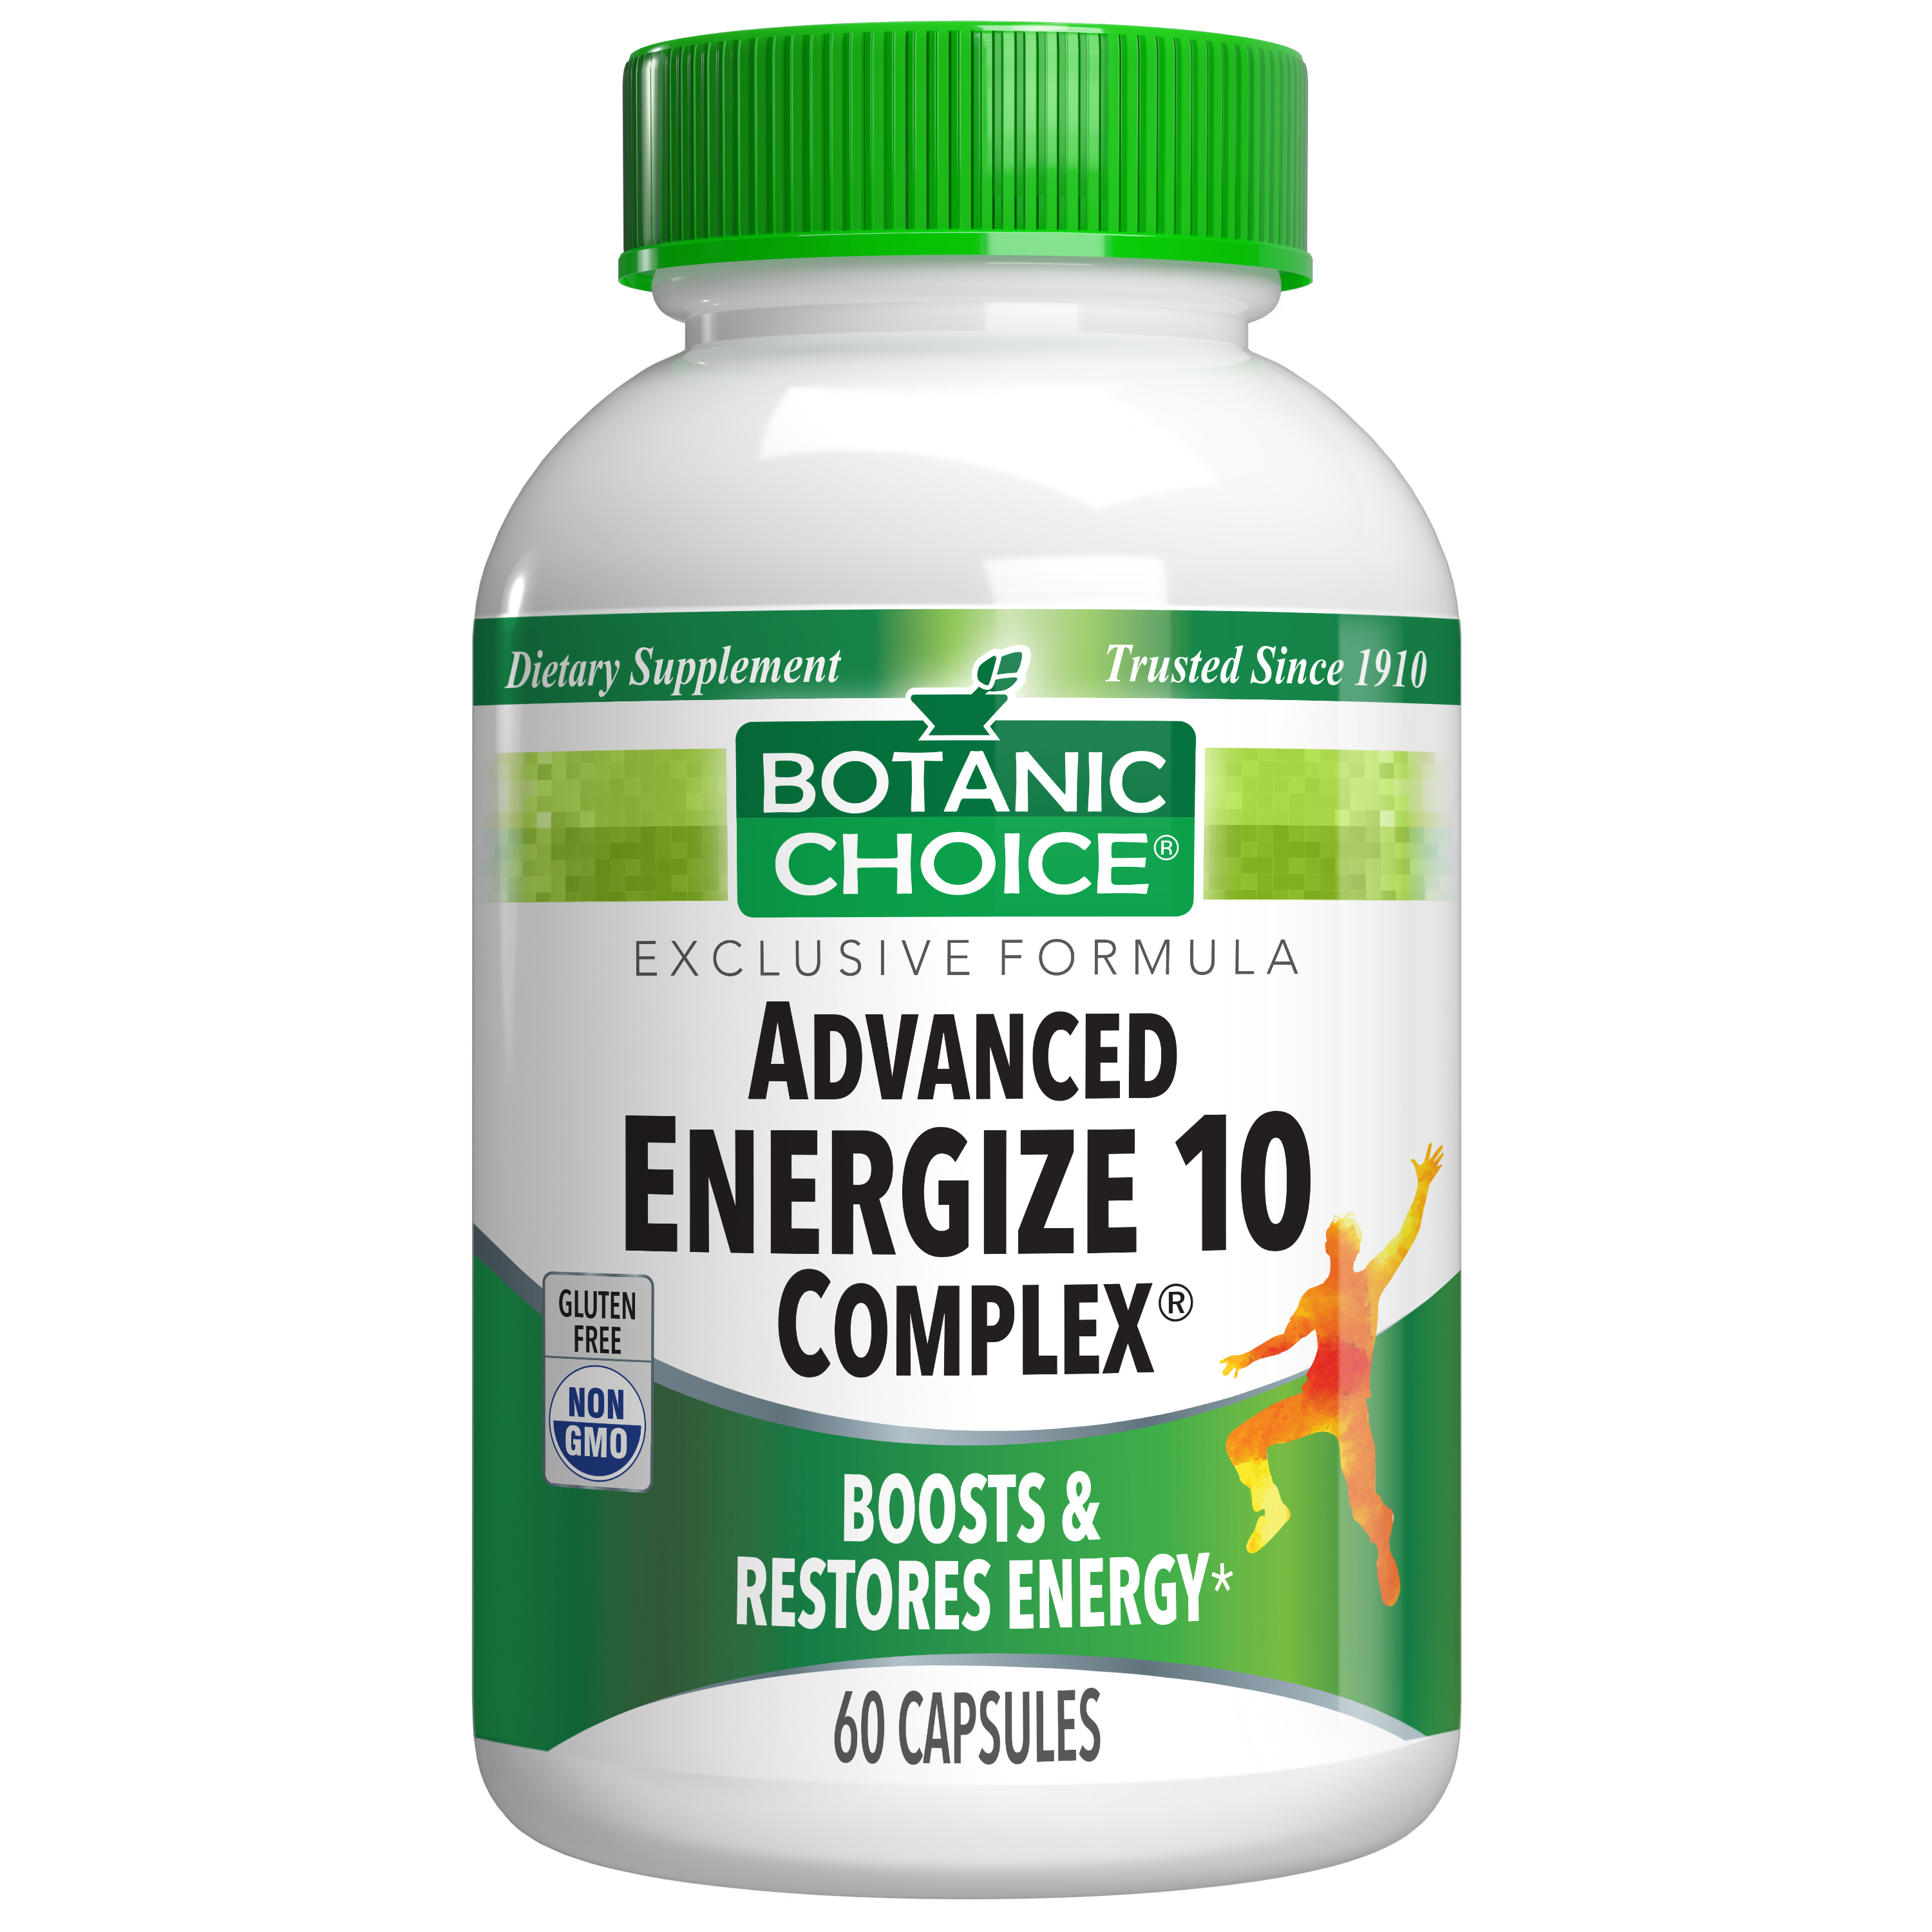 Botanic Choice Advanced Energize 10 Complex® - Energy Support Supplement - 60 Capsules